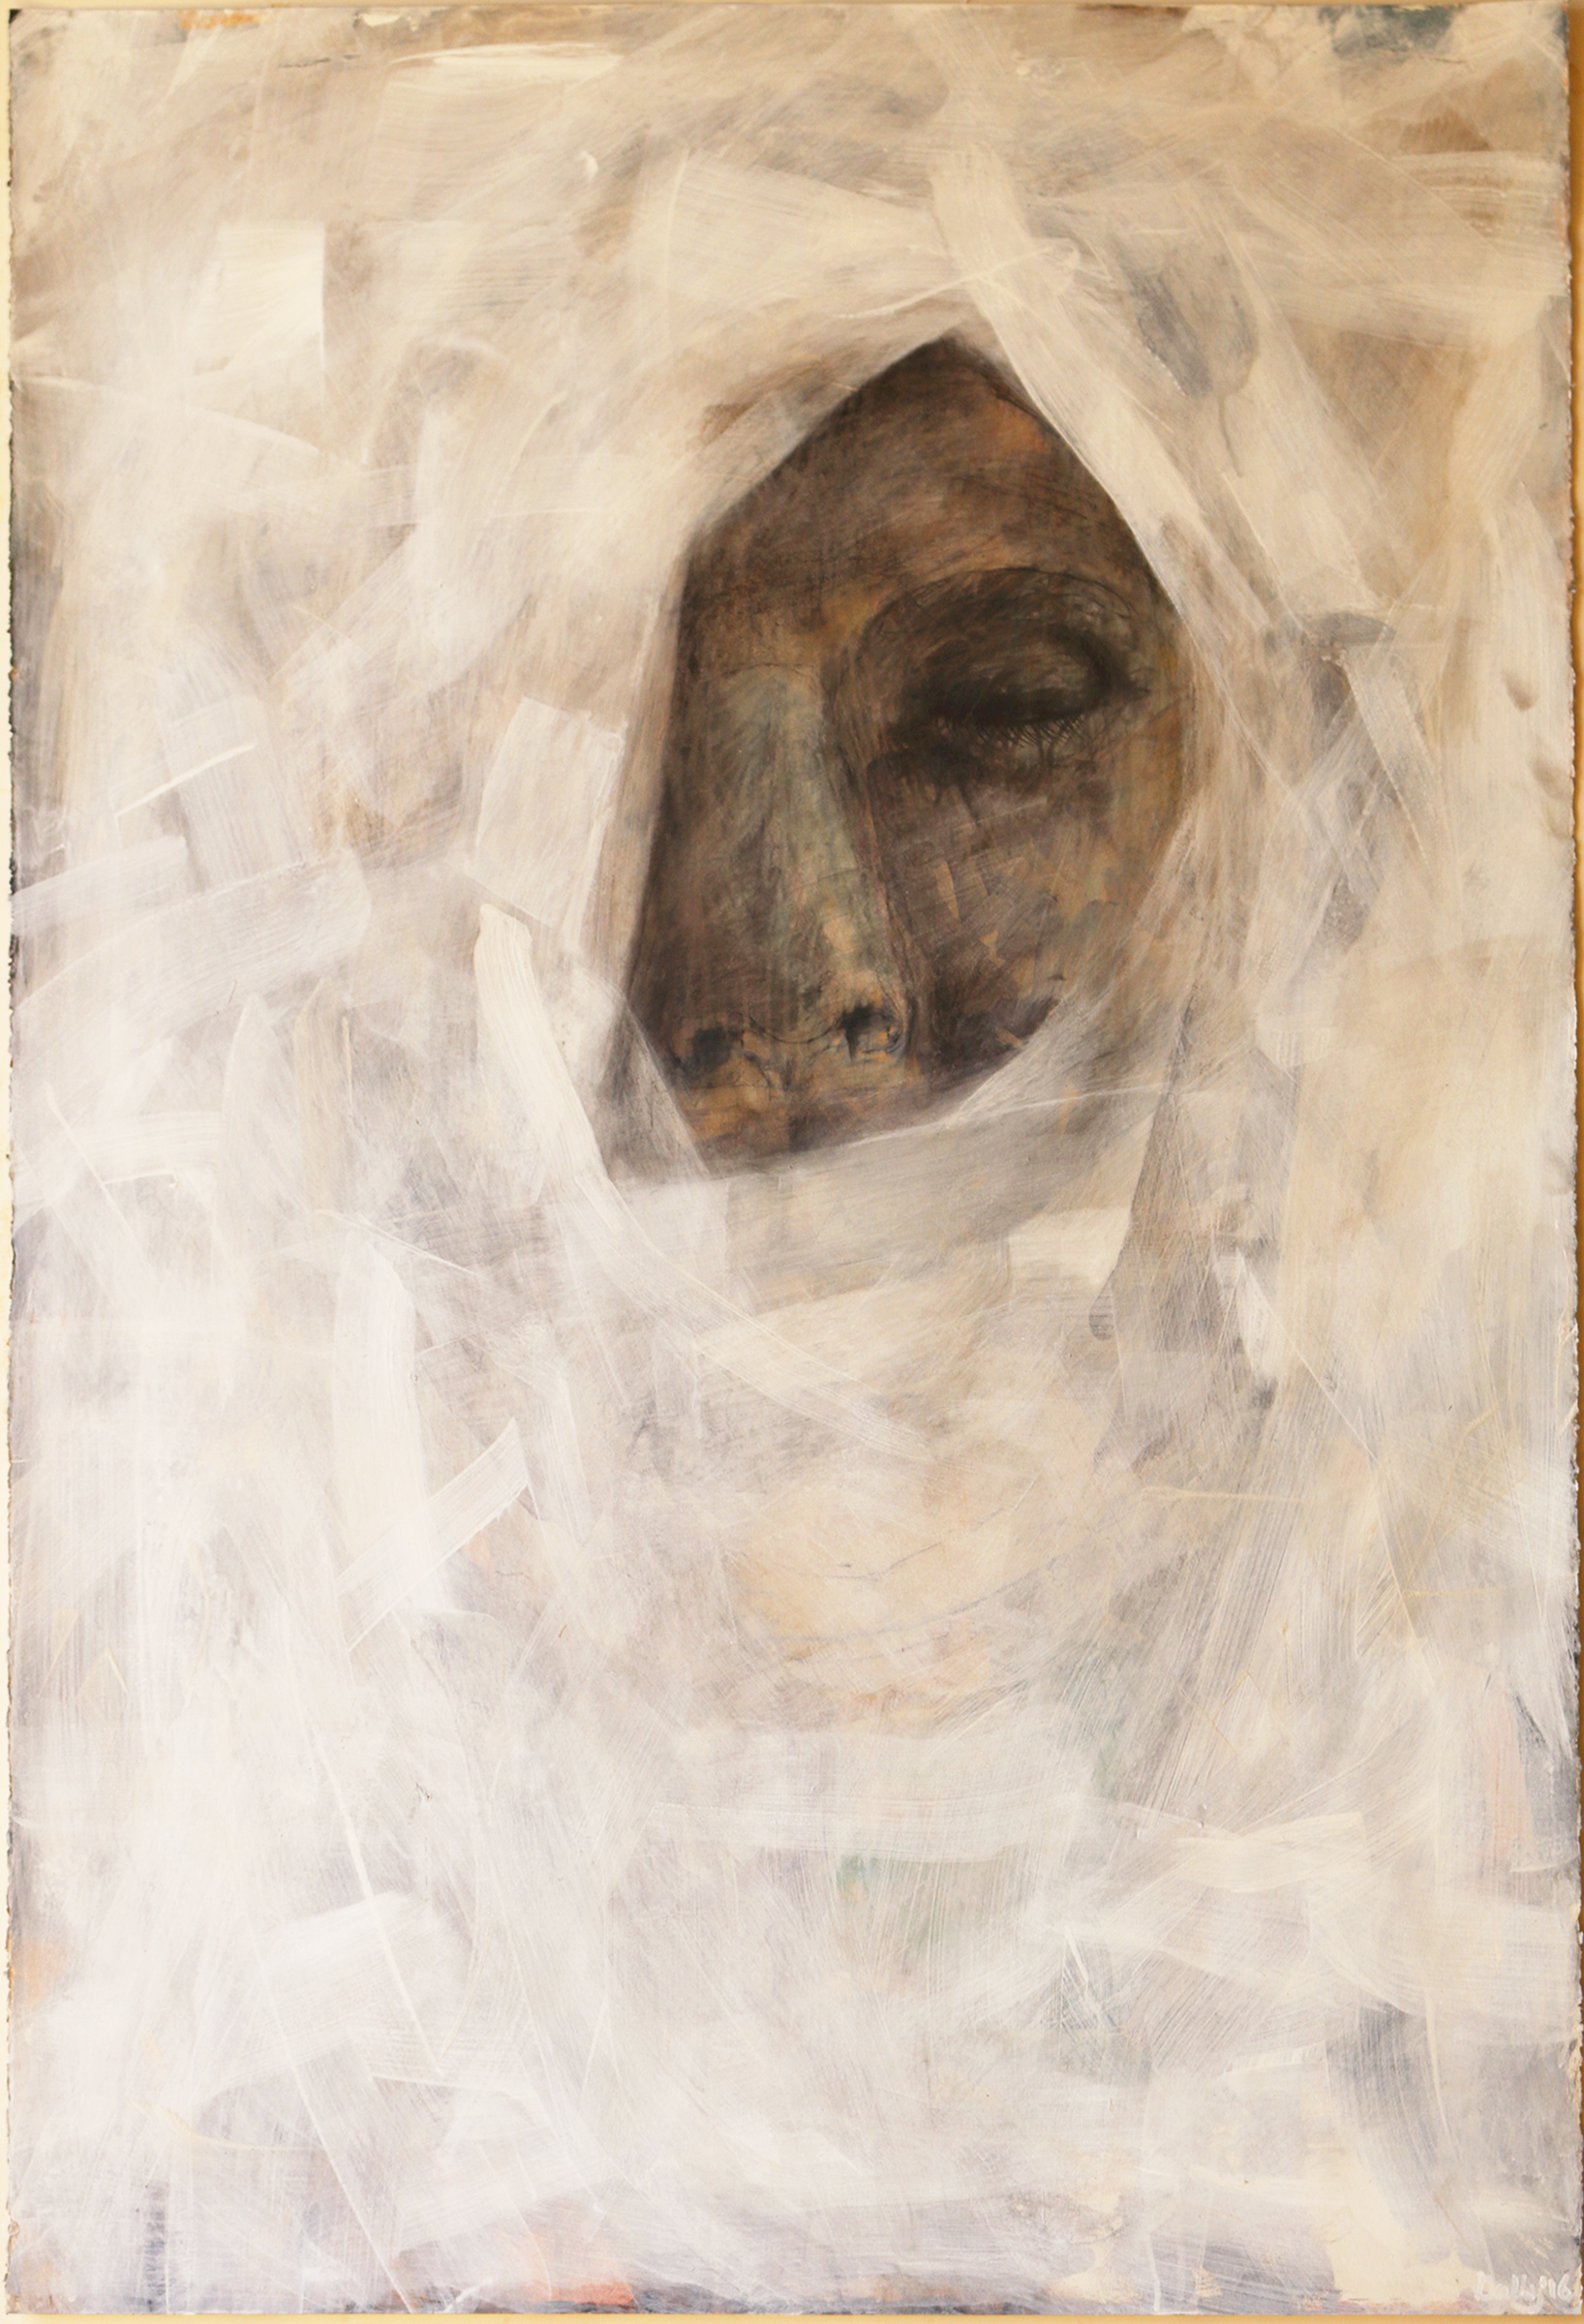 Veiled Figure, 2016